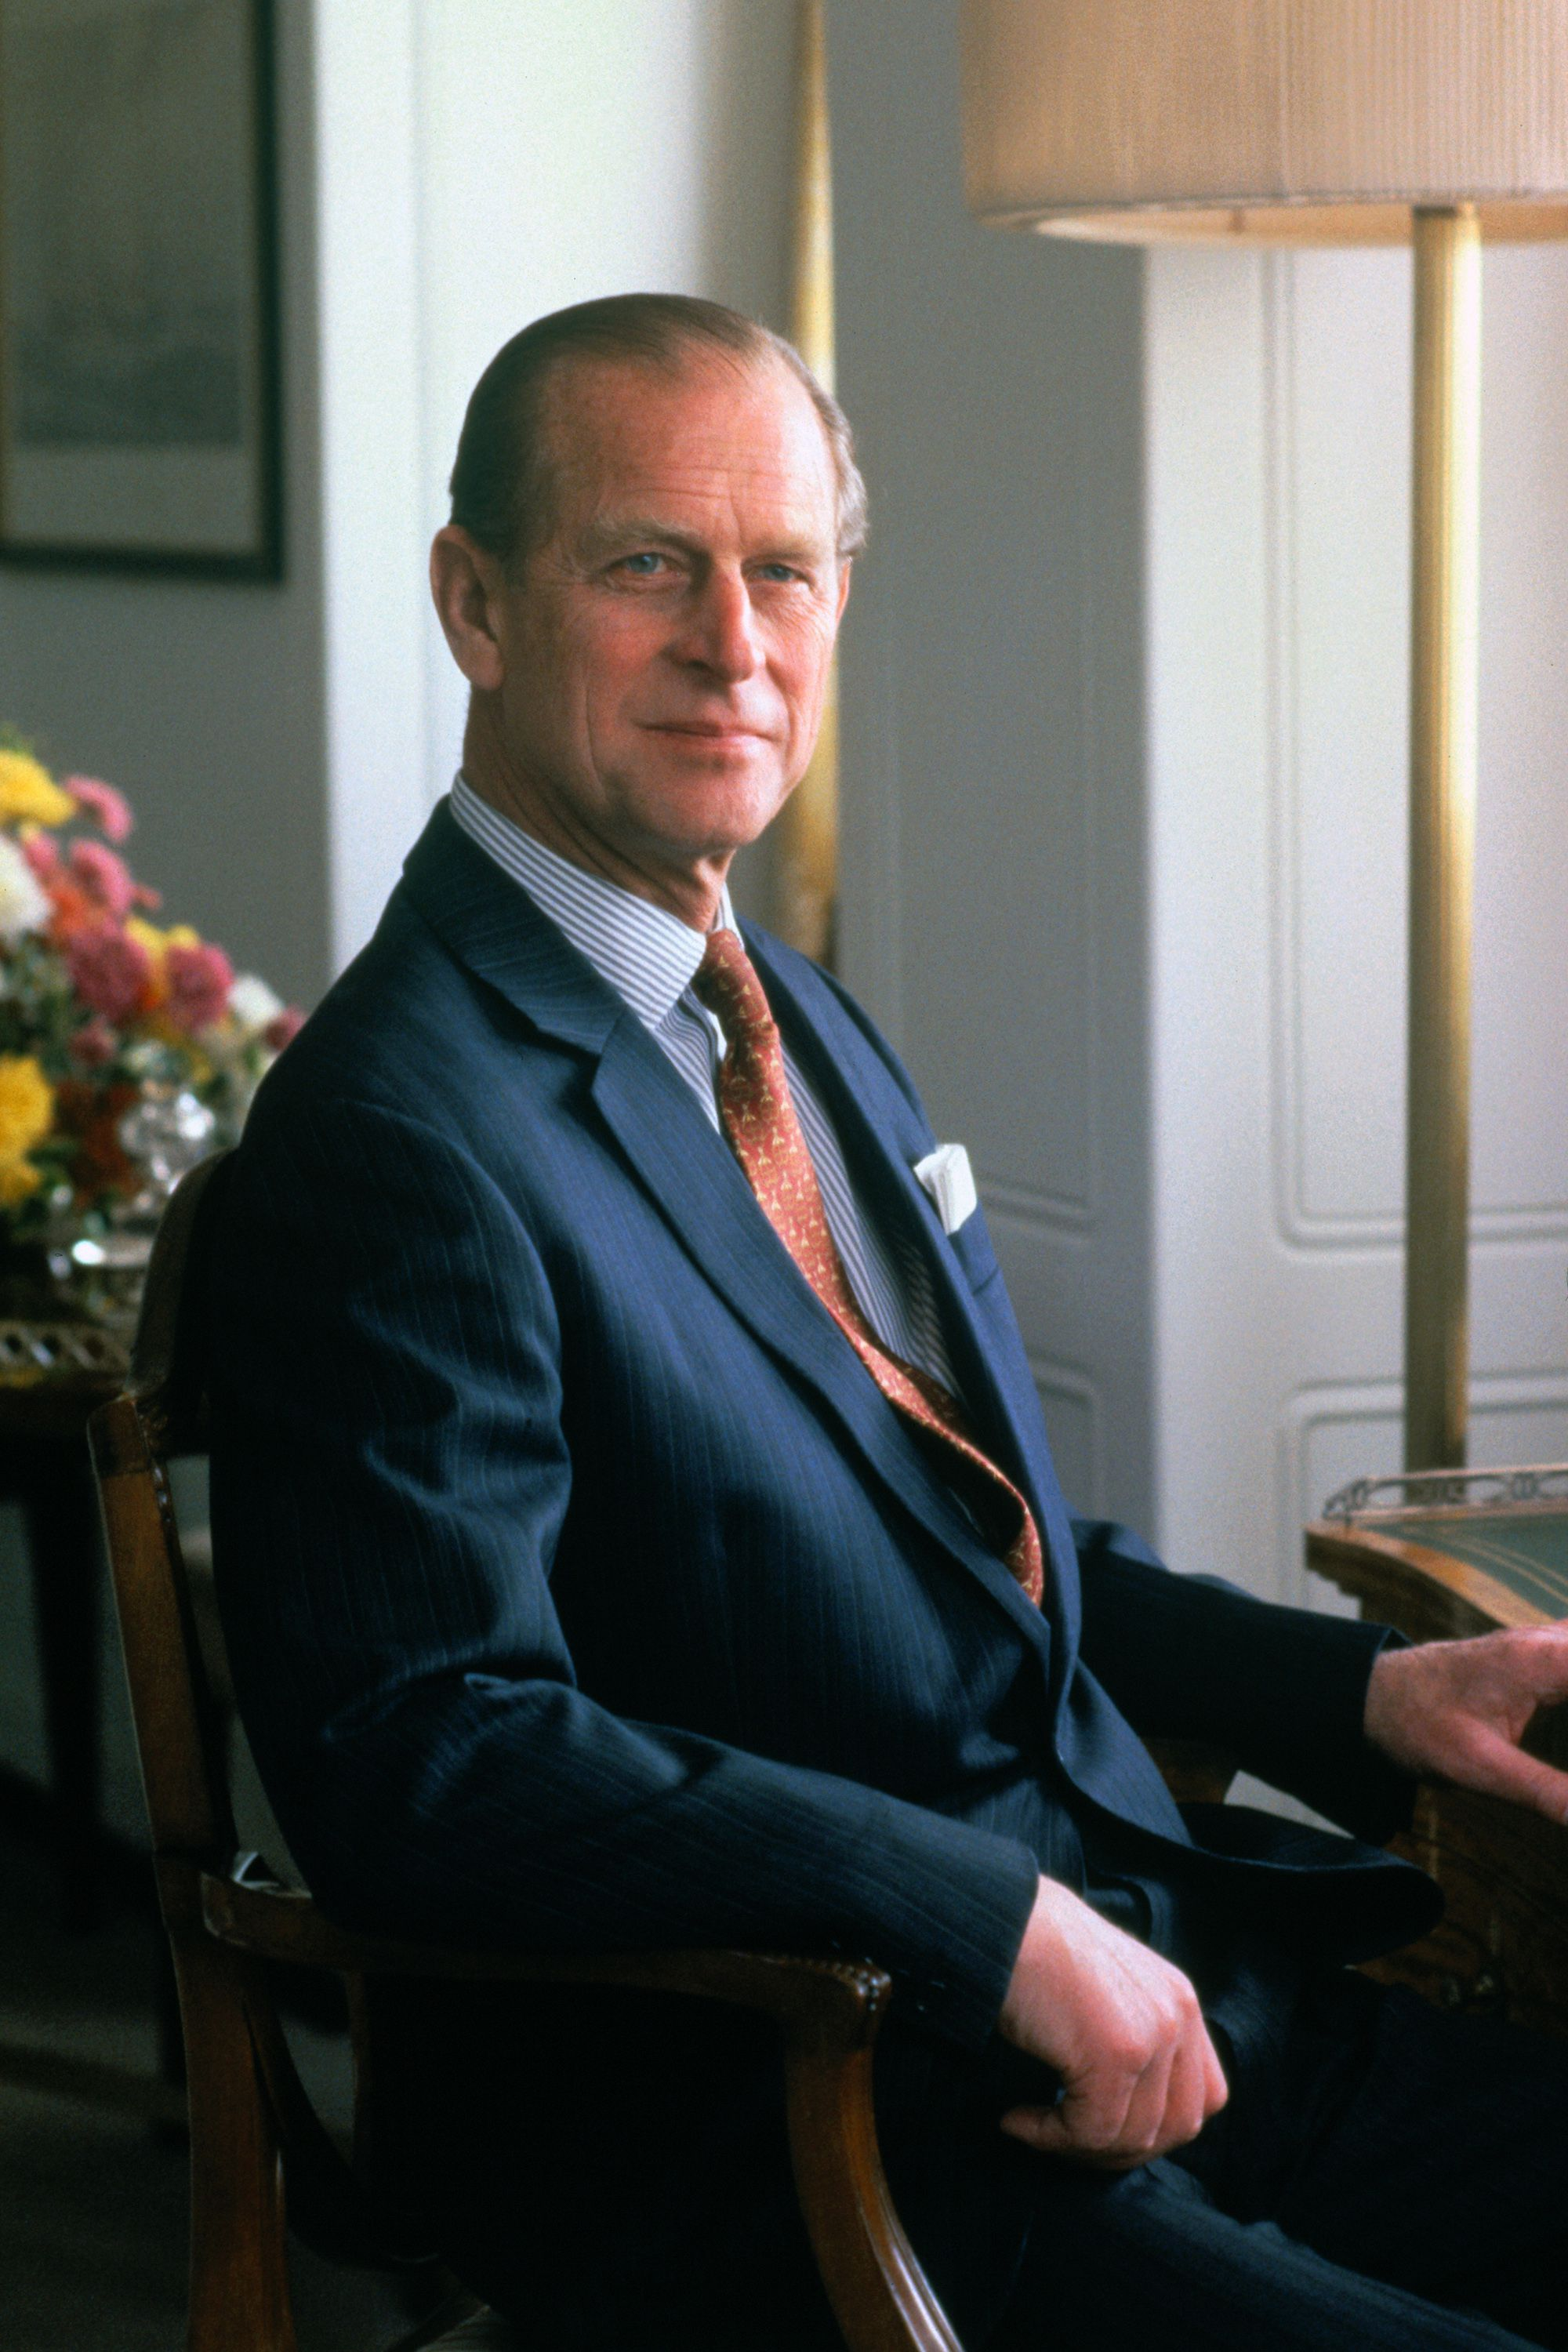 Prince Philip sitting on a chair